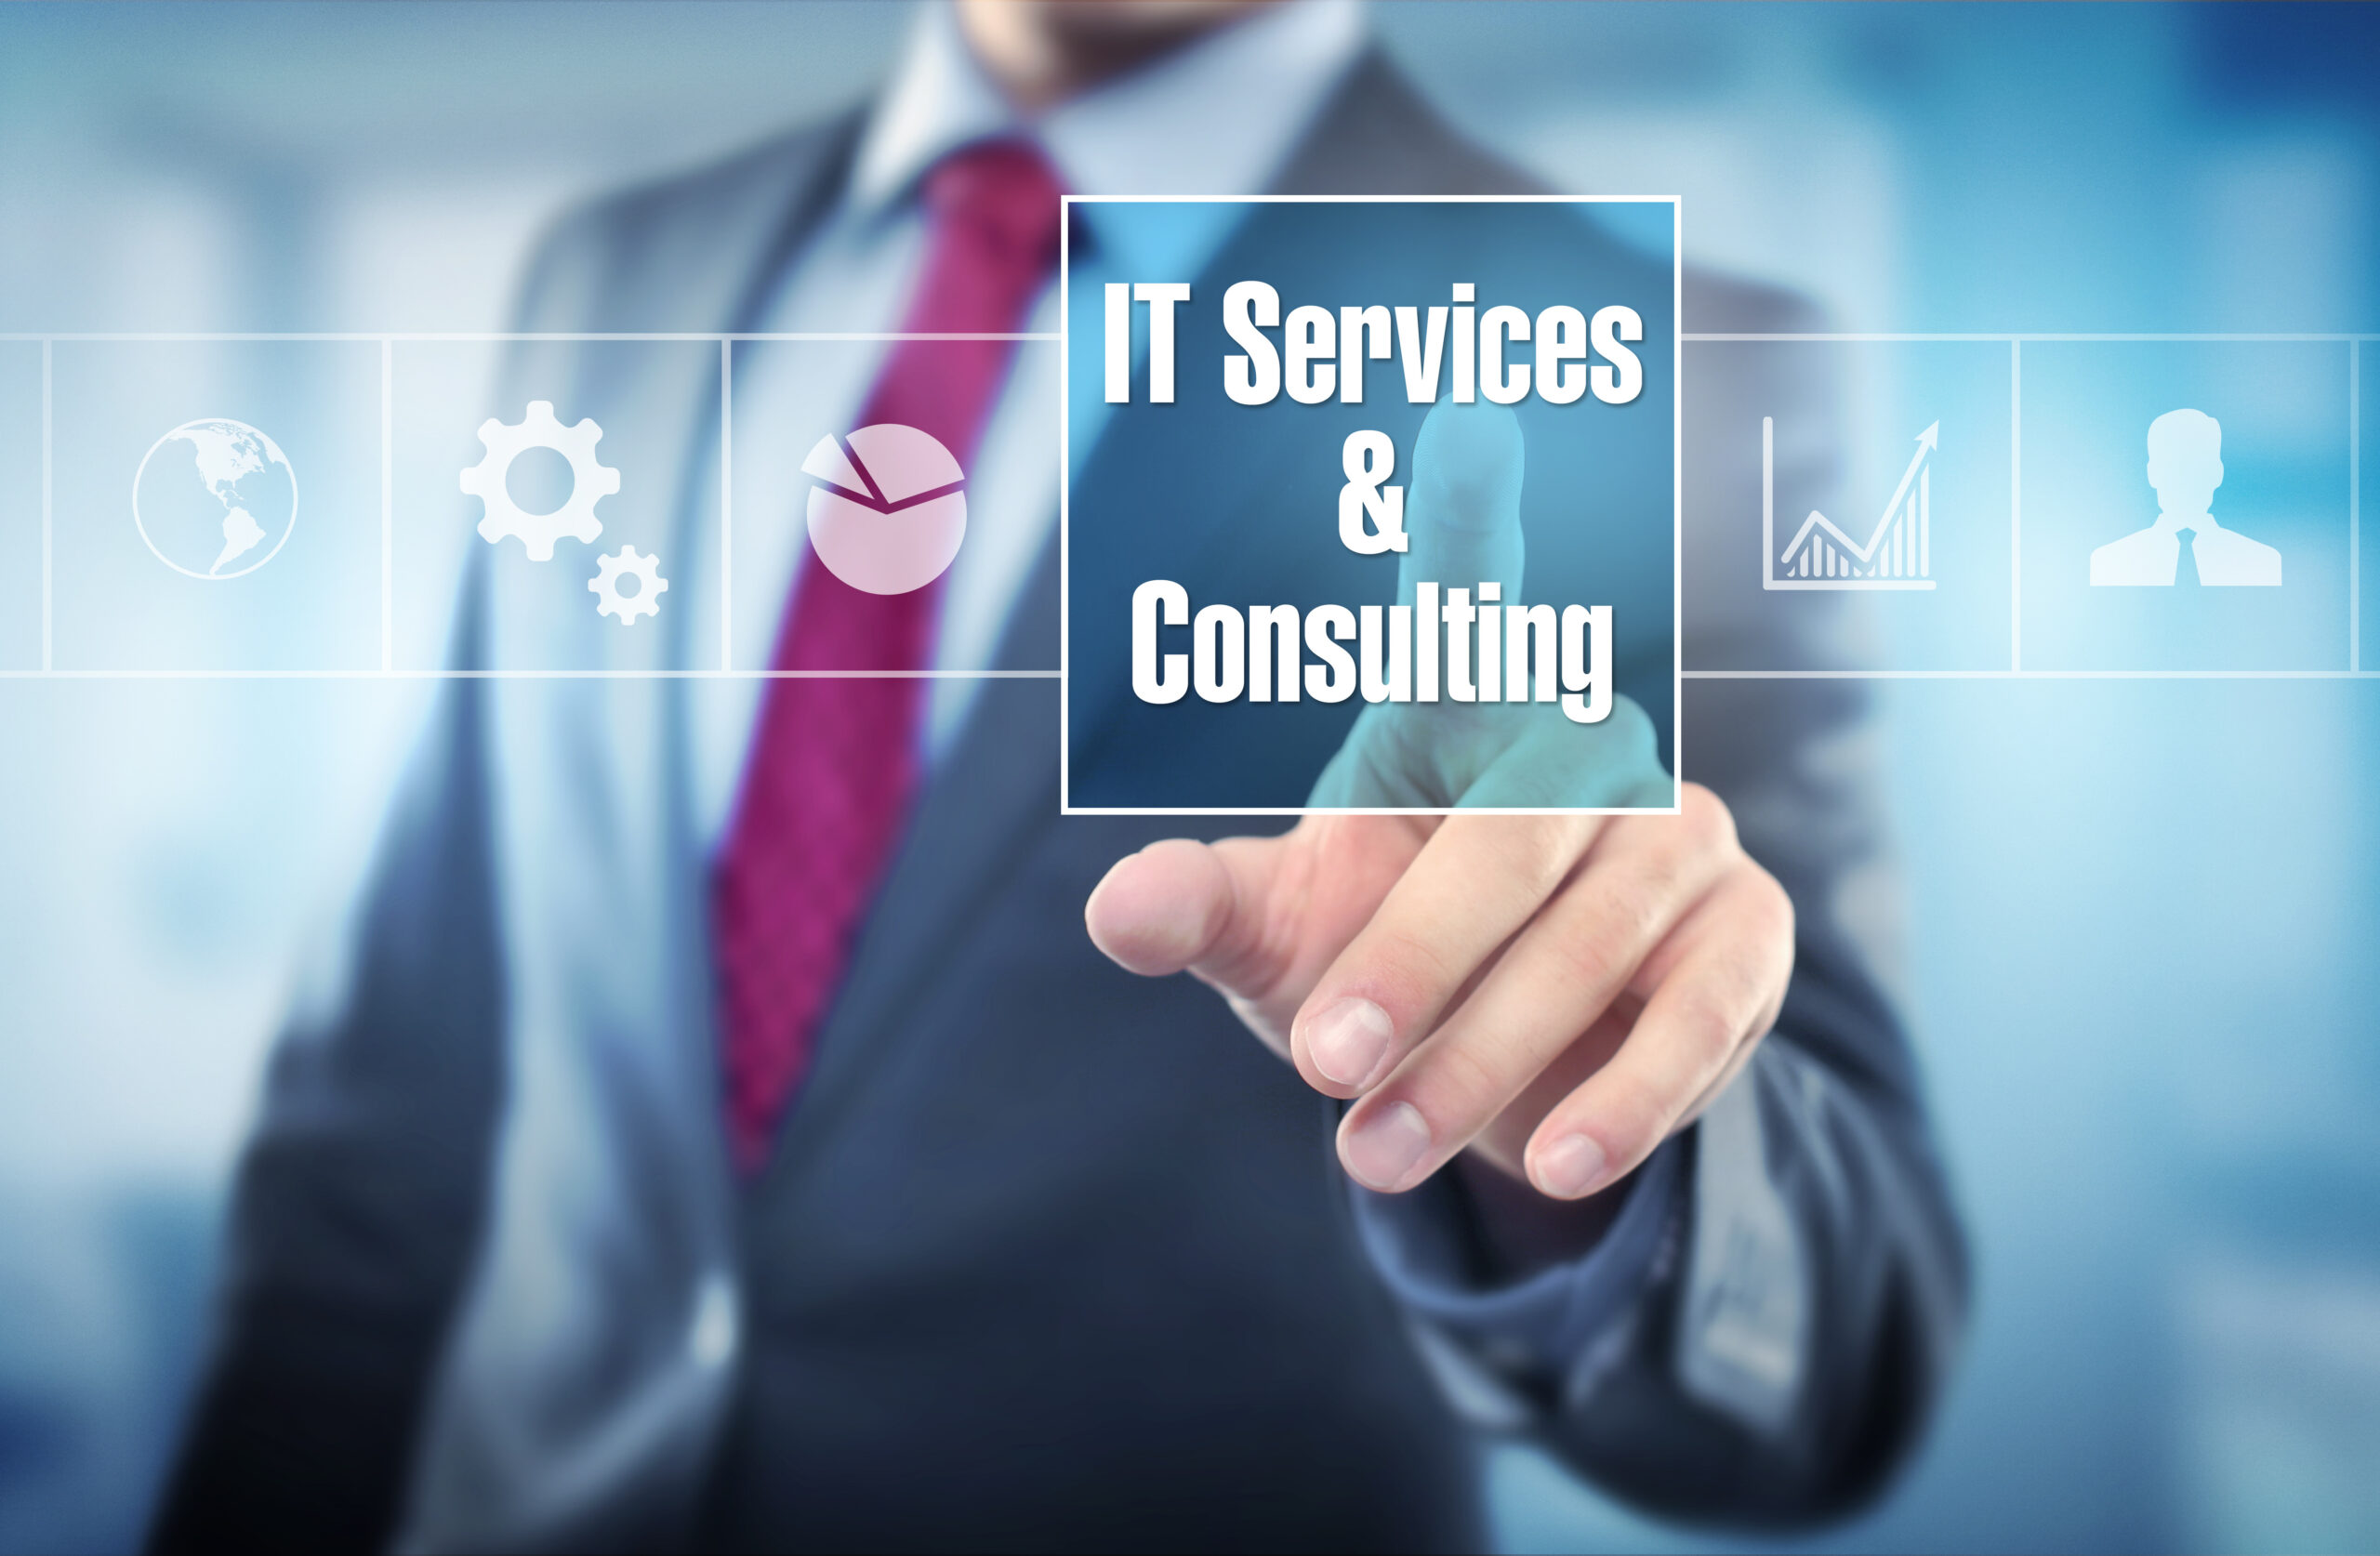 IT Service & Consulting